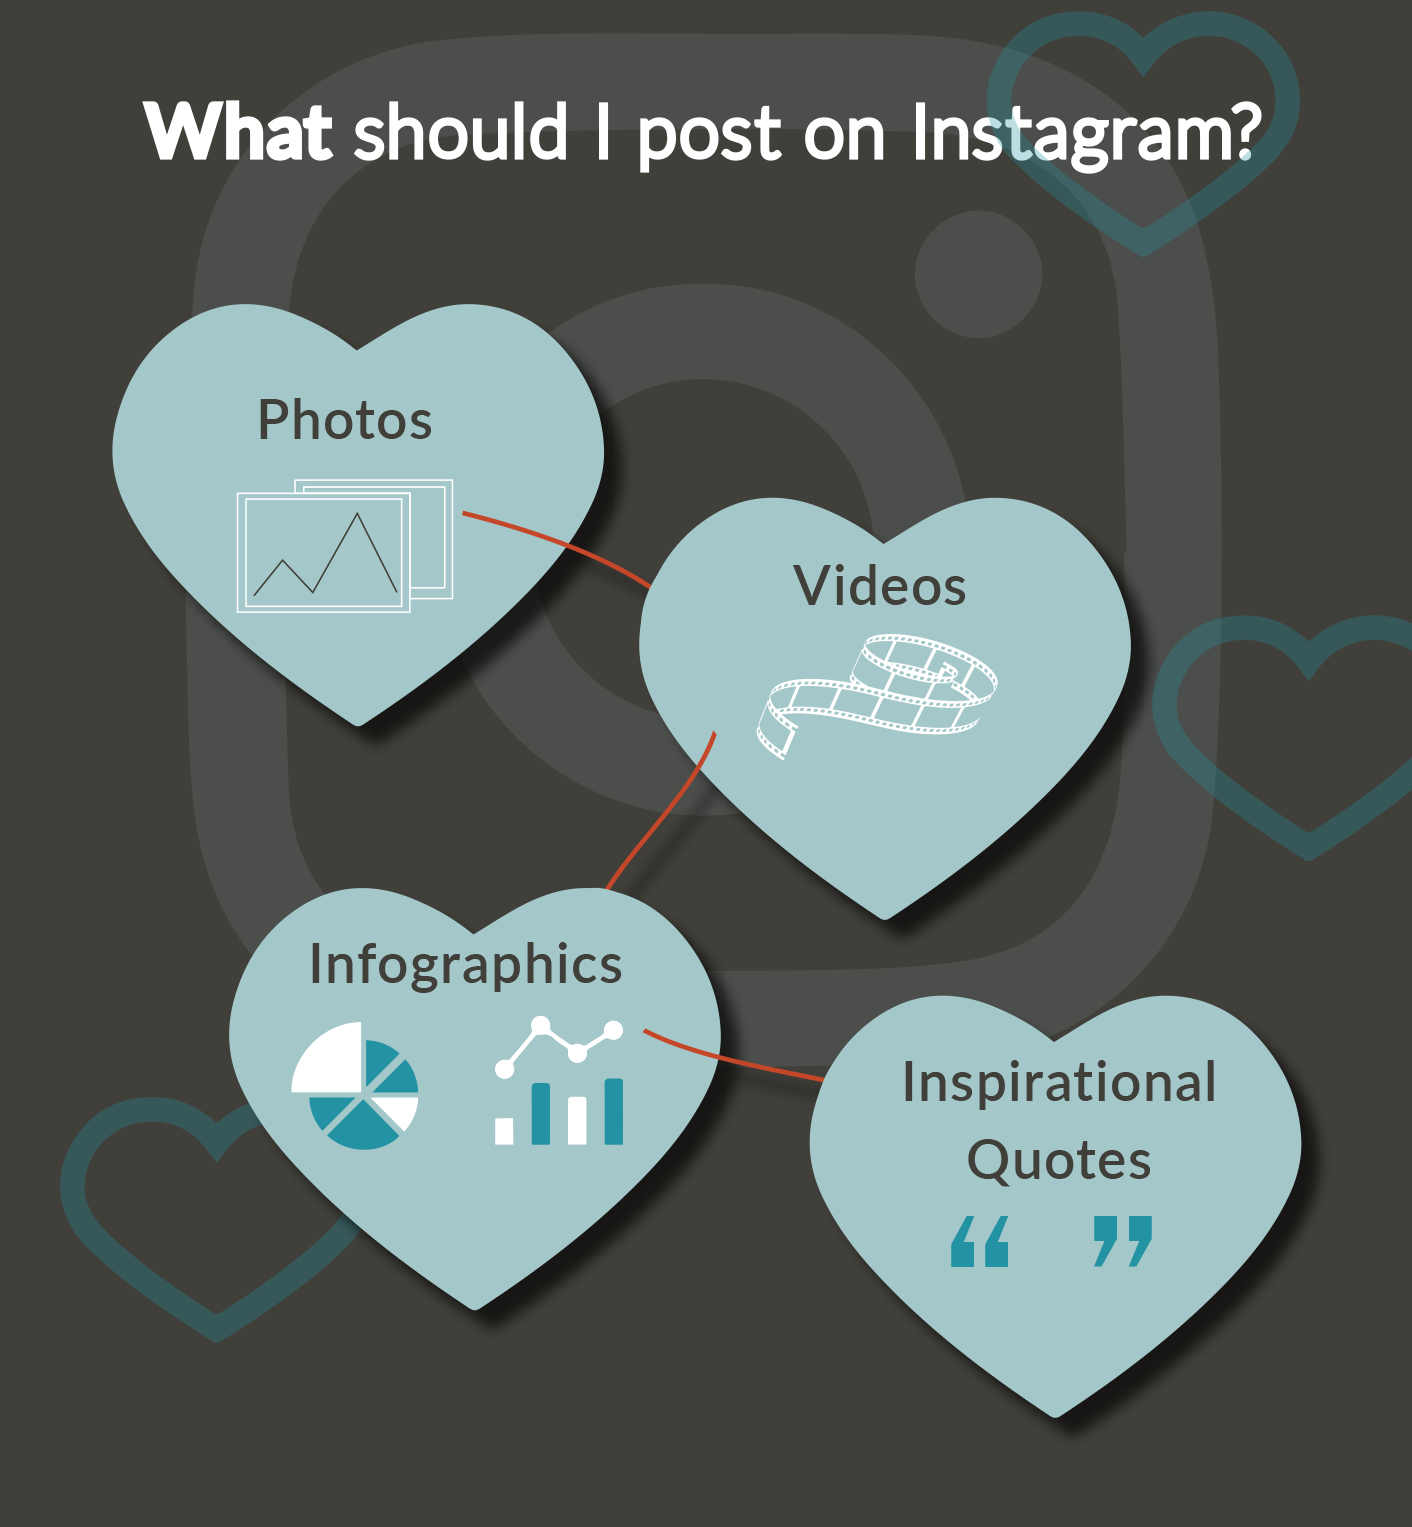 Jones-complete-social-media-guide-instagram-whattopost